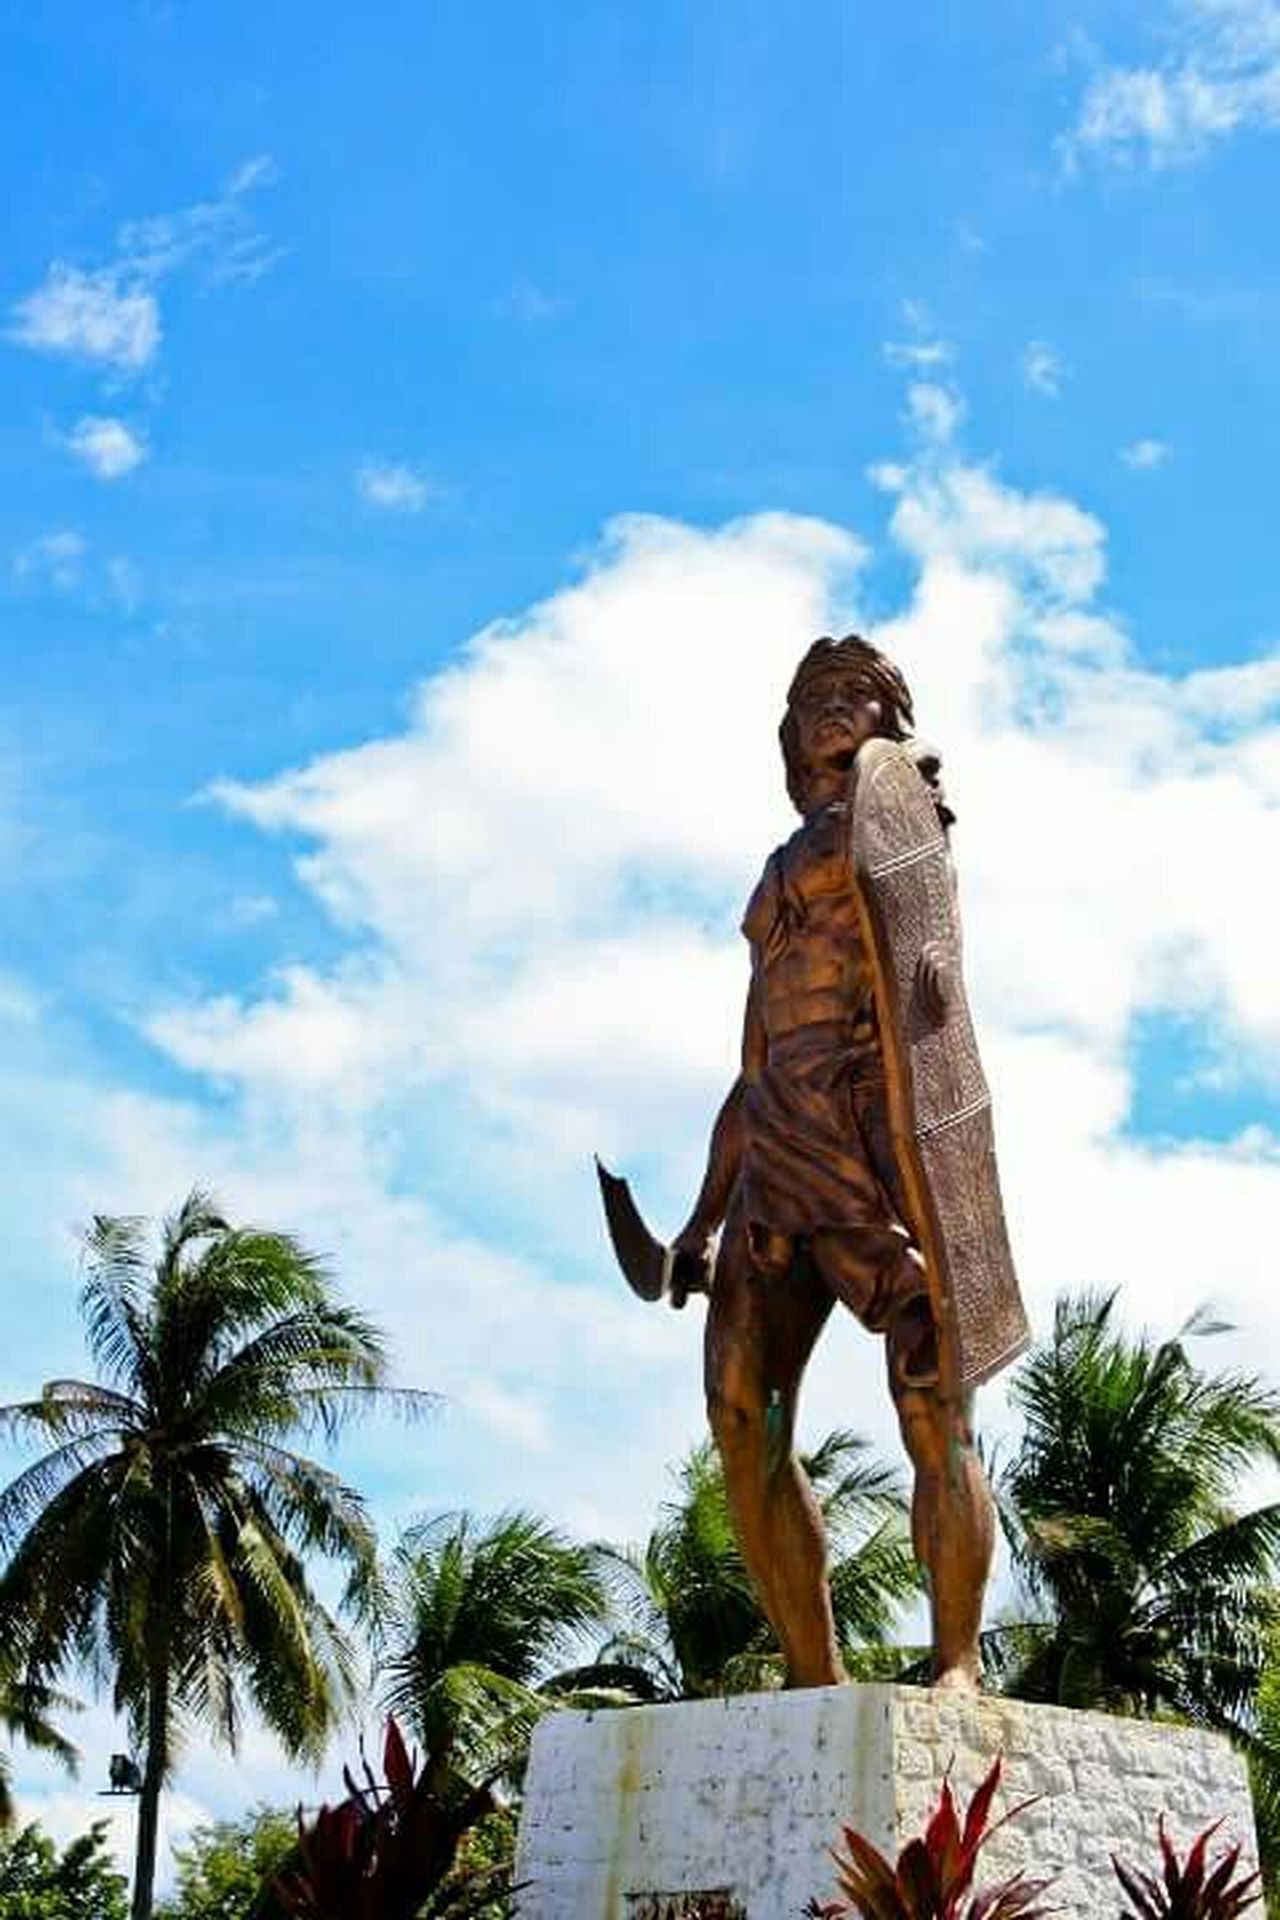 Lapulapu Cebu City Eye4photography  Philippines Travel Adventure Exploring History Monuments Taking Photos